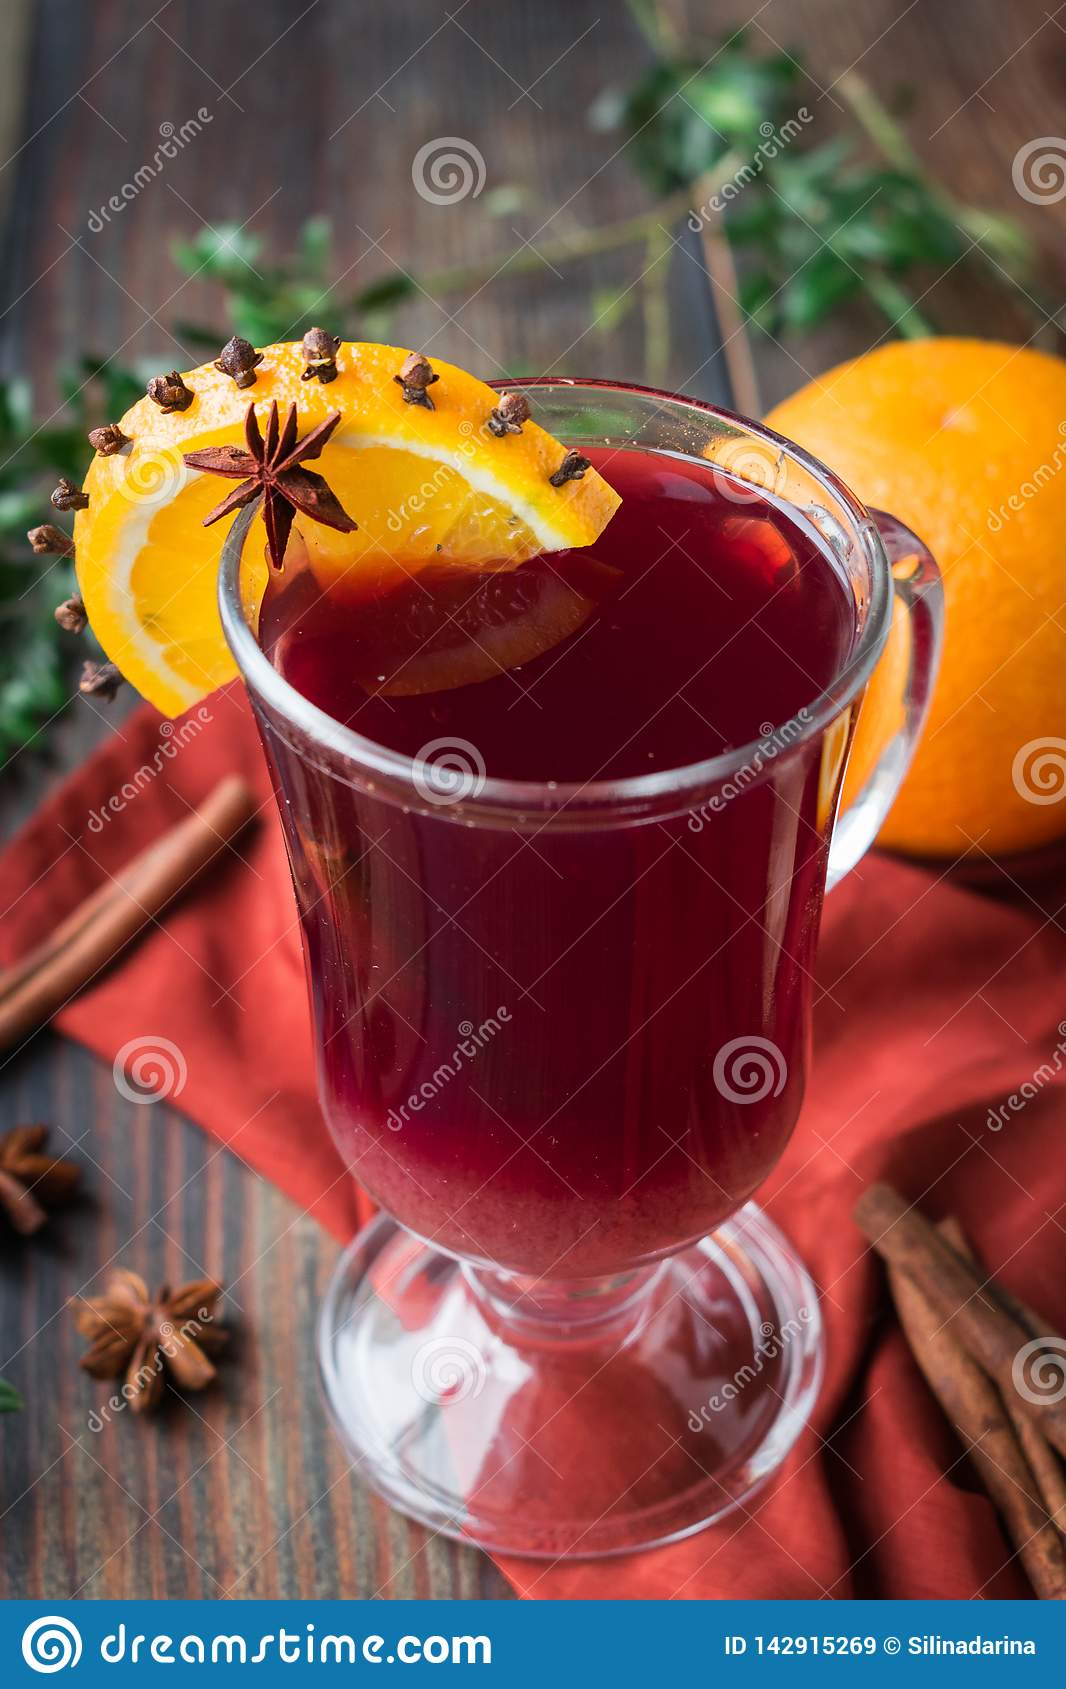 Non-alcoholic mulled wine from grape juice with orange and spices in a glass goblet